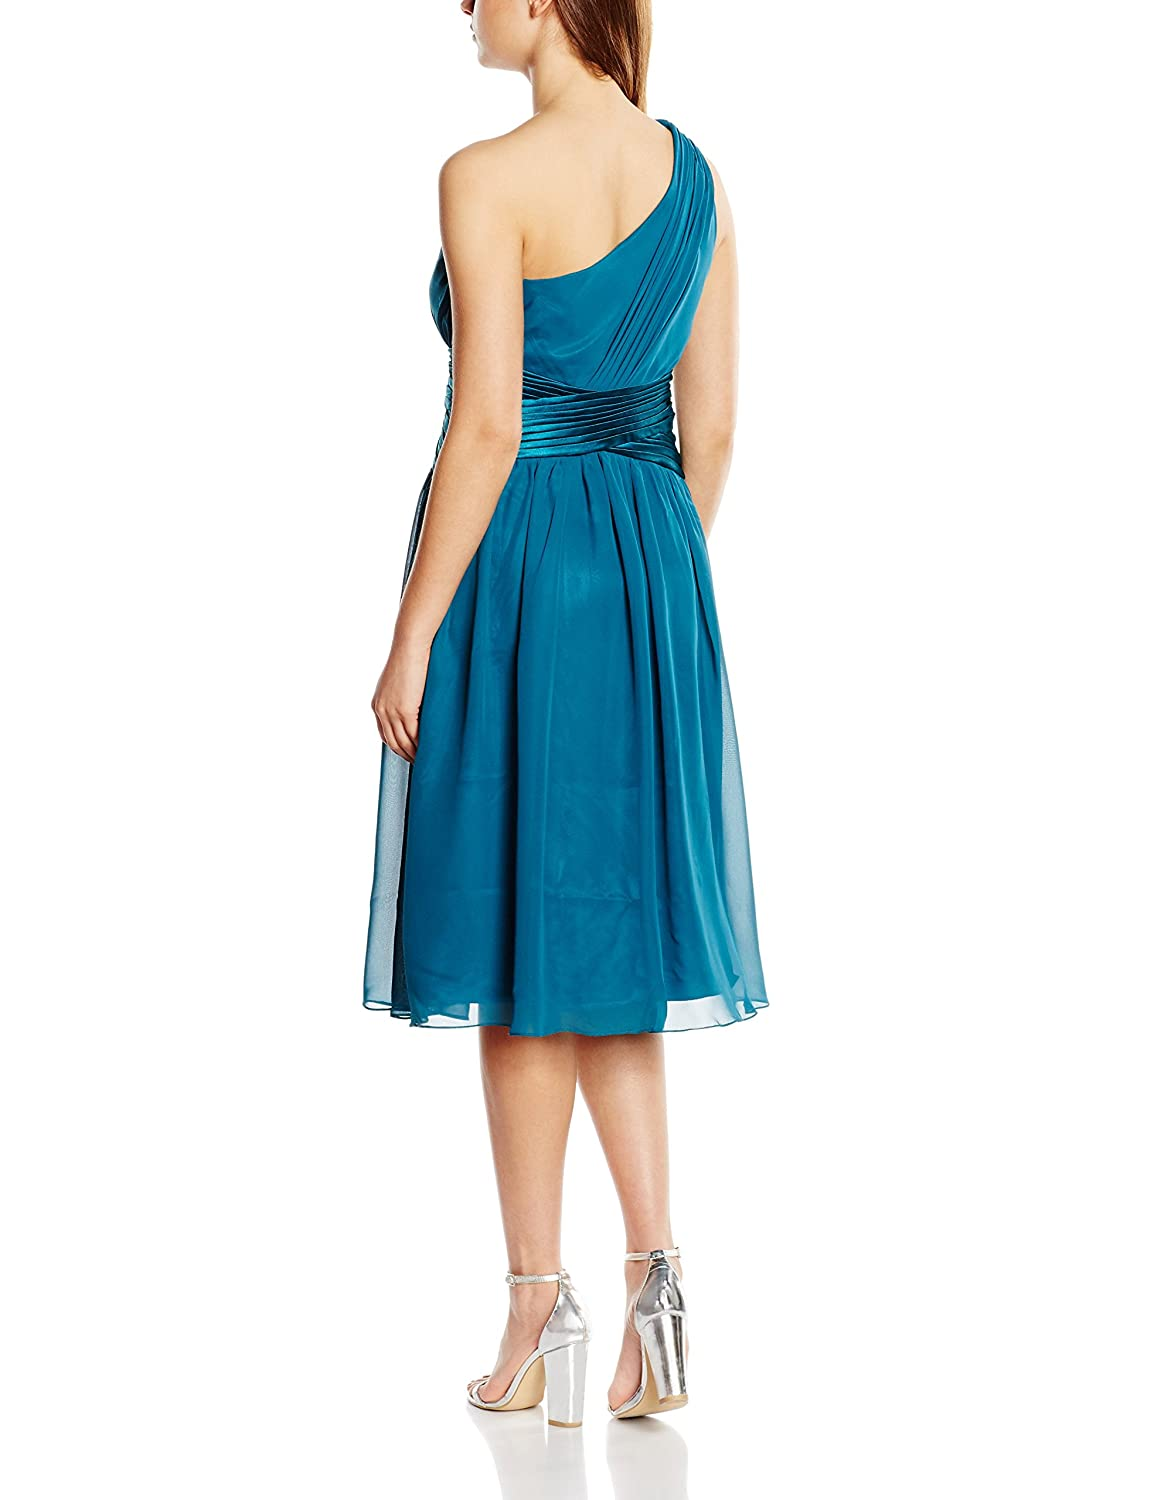 Astrapahl Women\'s Co8098ap Elegant chiffon Dress in Roman toga-Style ...